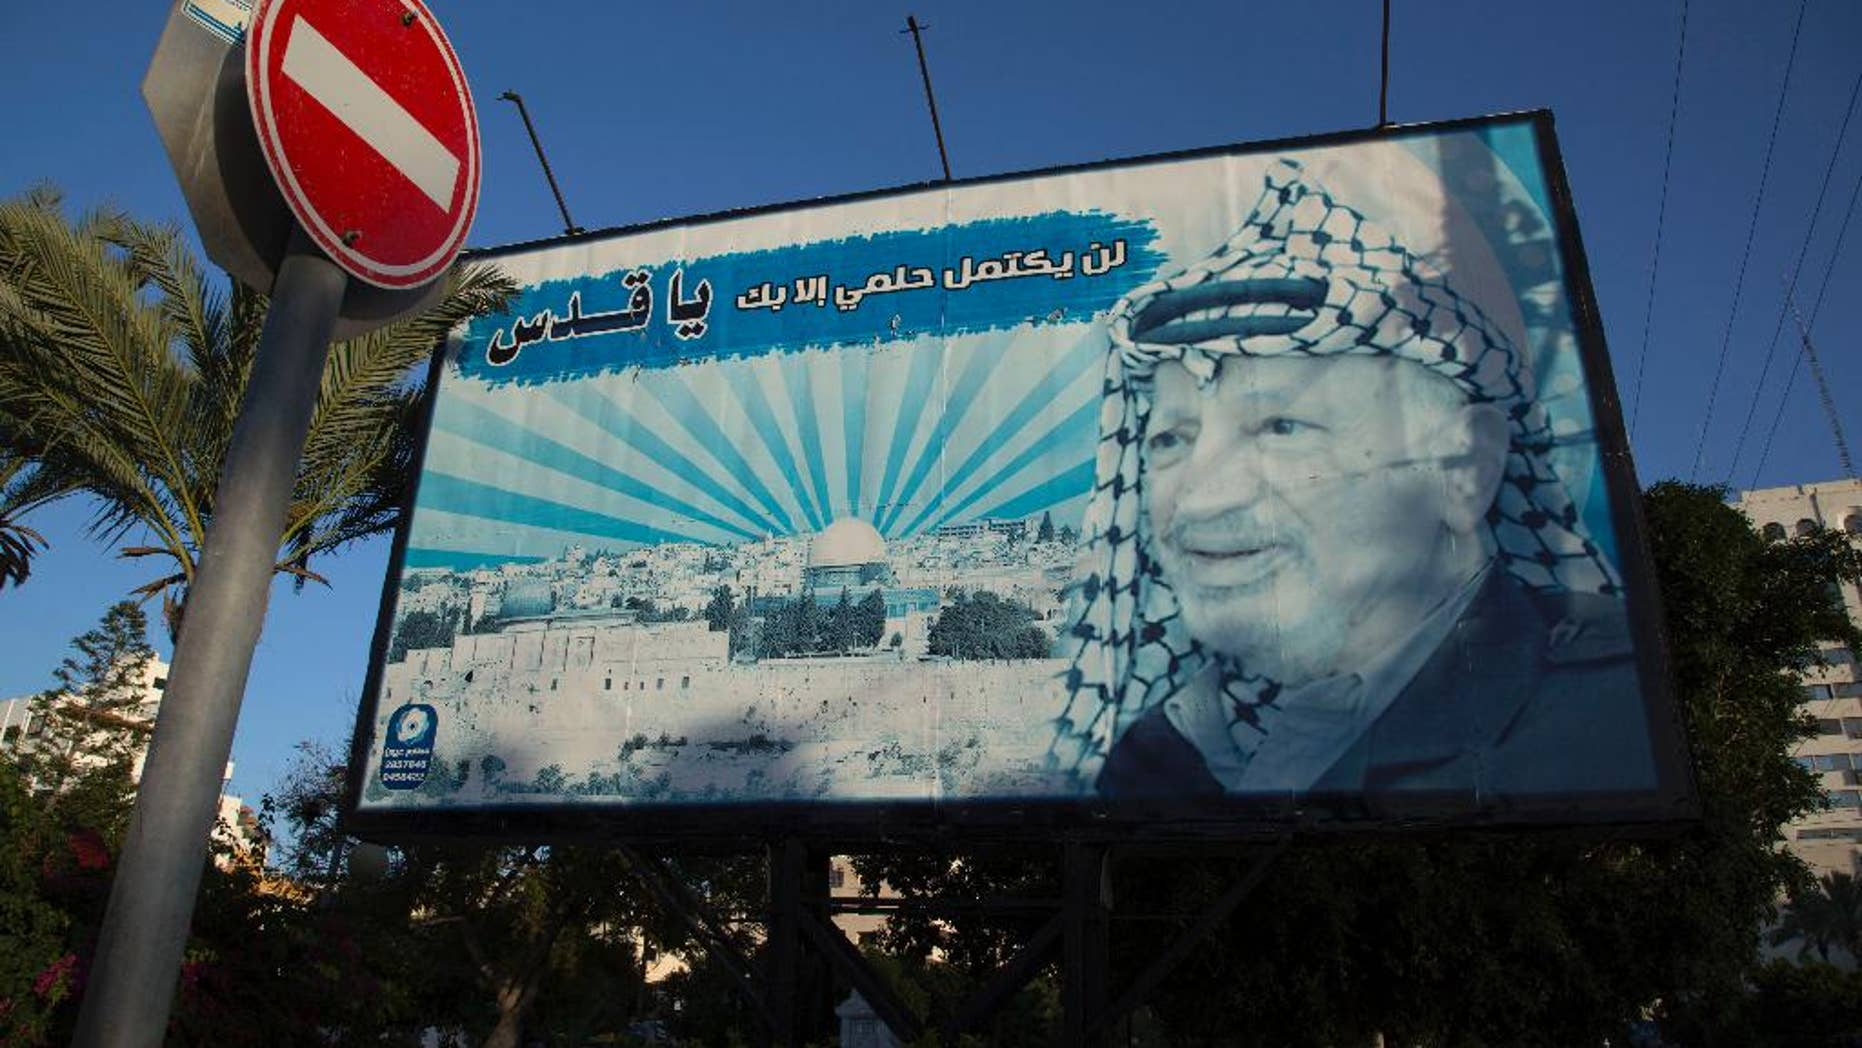 """A billboard with a picture of the former Palestinian leader Yasser Arafat is seen with Arabic writing that reads, """"My dream will not be complete without Al-Quds,"""" in Gaza City, Sunday, Nov. 9, 2014. The Hamas militant group on Sunday forced the cancellation of a memorial ceremony that was to have marked the 10th anniversary of the death of Palestinian leader Yasser Arafat, underscoring the lingering tensions with the rival Fatah movement despite the formation of a unity government meant to end years of hostilities. (AP Photo/Khalil Hamra)"""